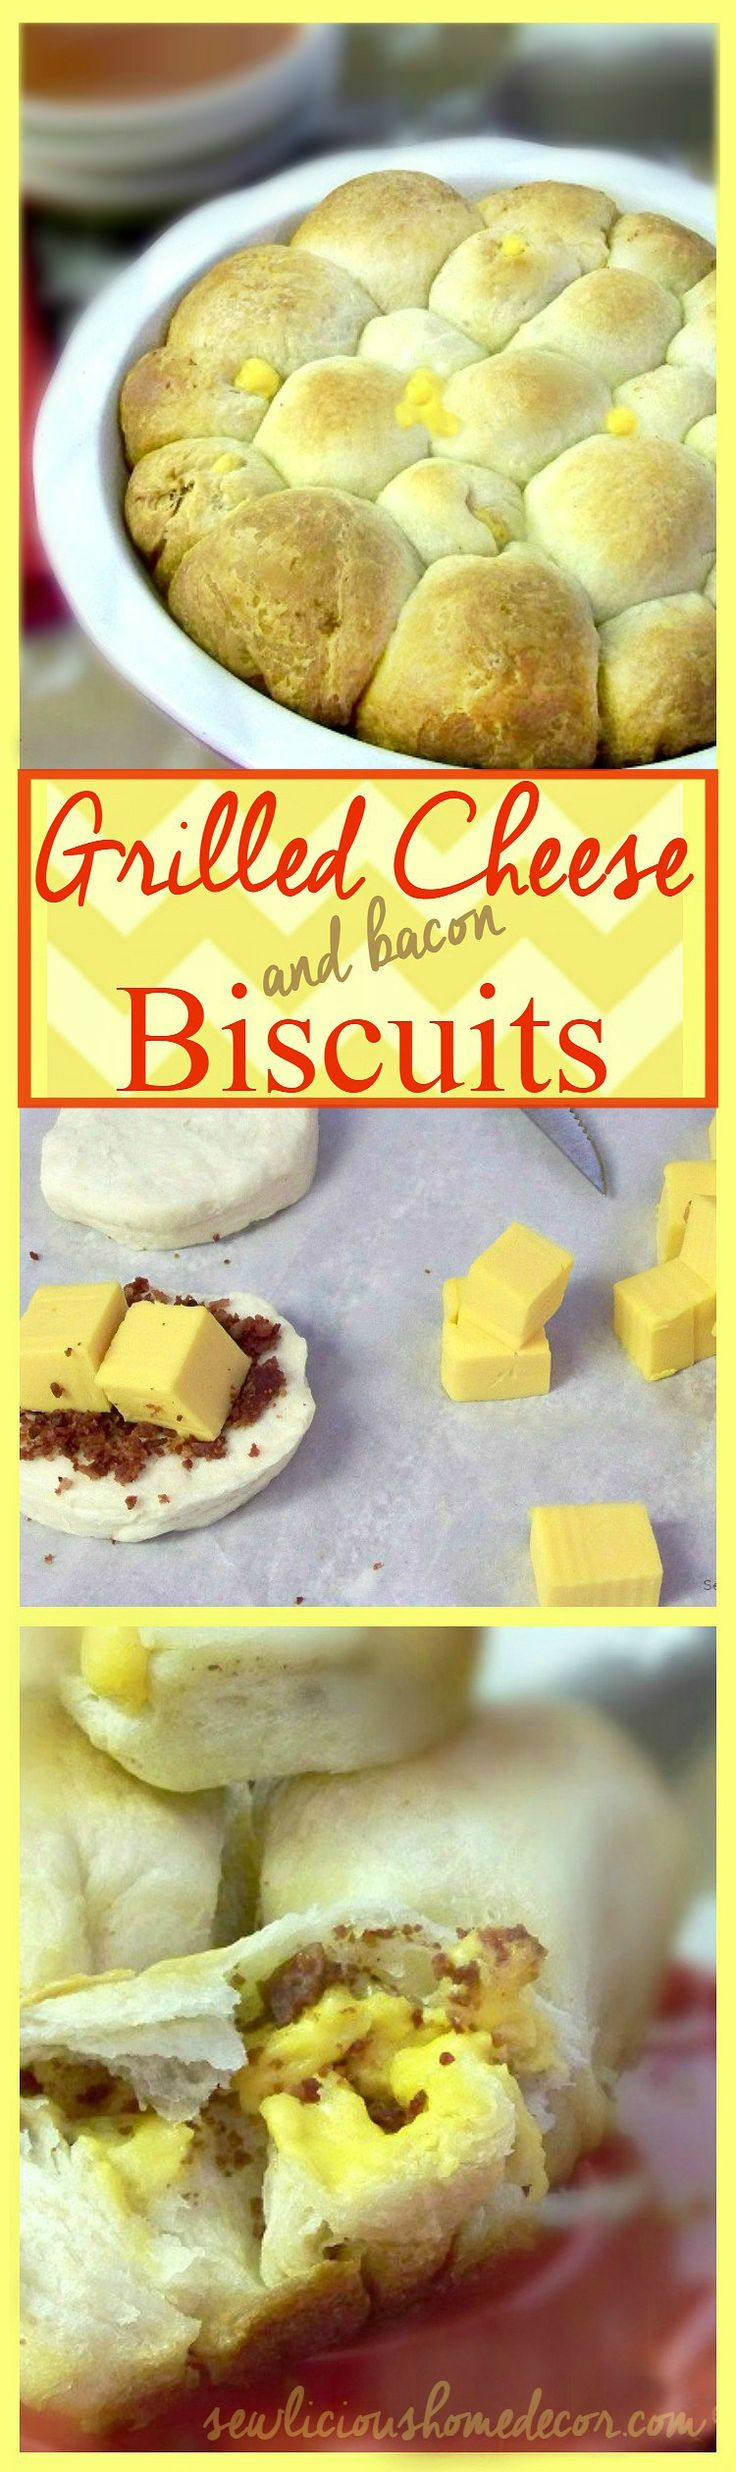 Velveeta Grilled Cheese and Bacon filled Biscuits. sewlicioushomedecor